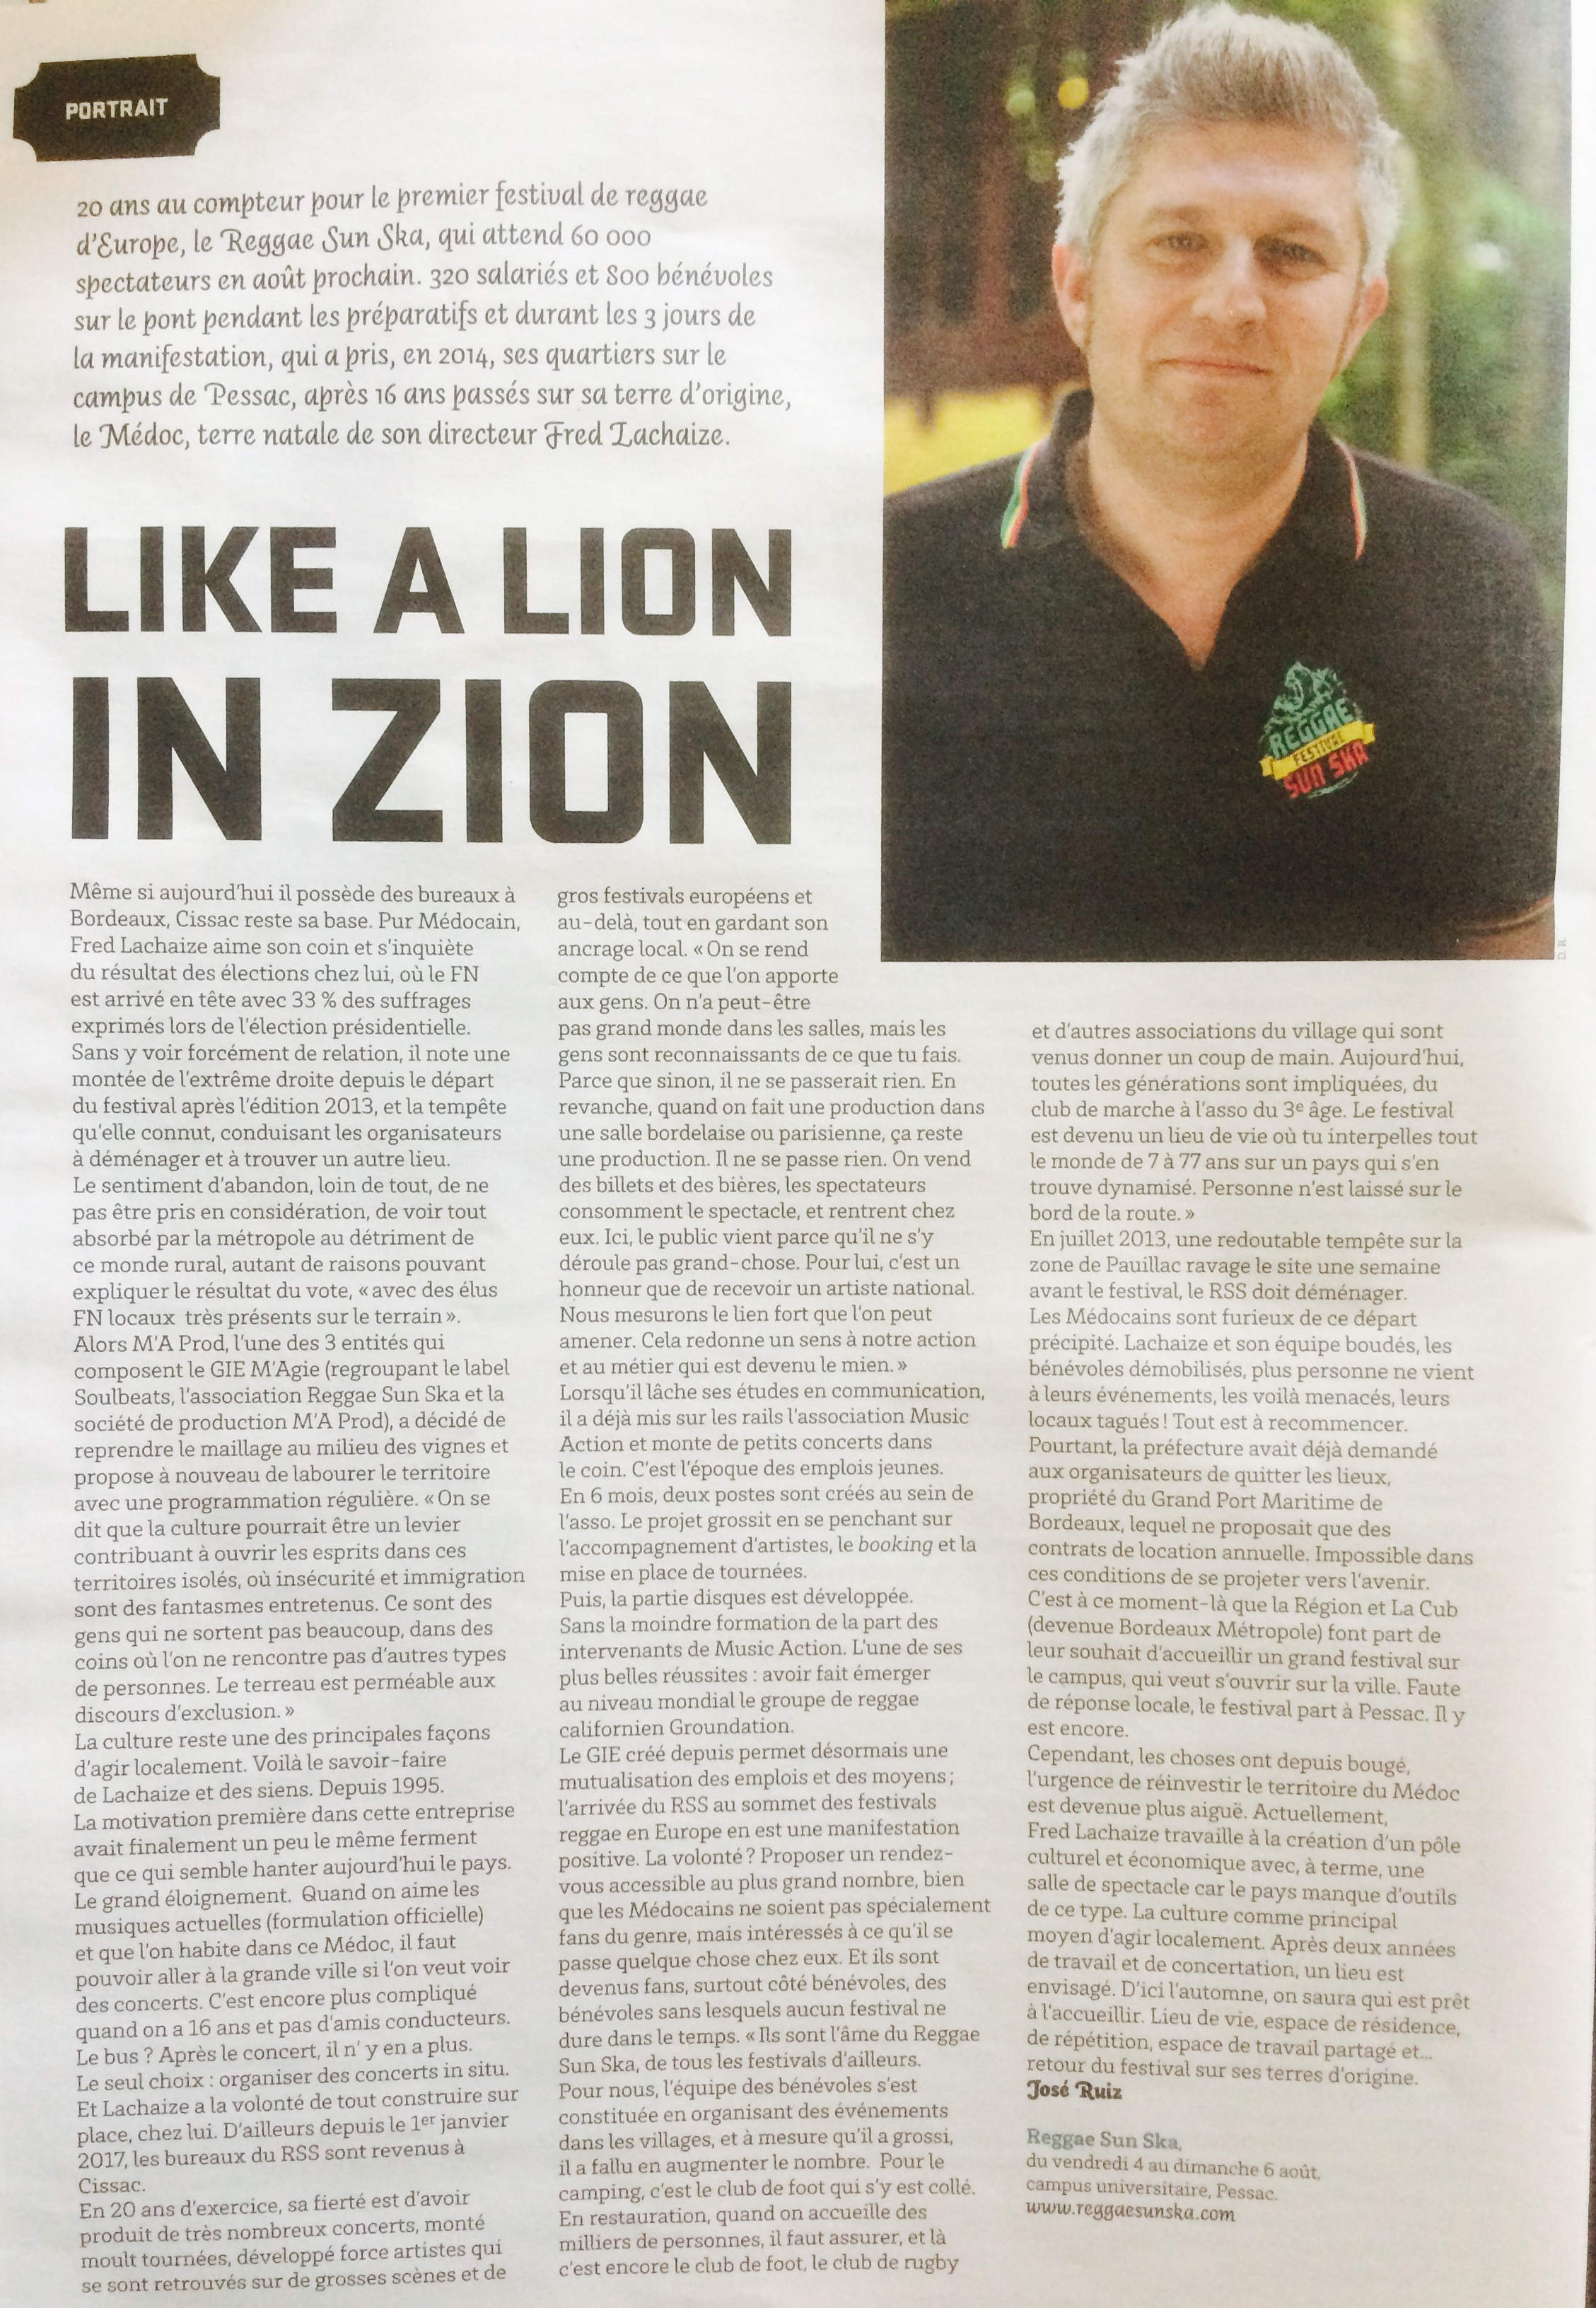 A lion in Zion